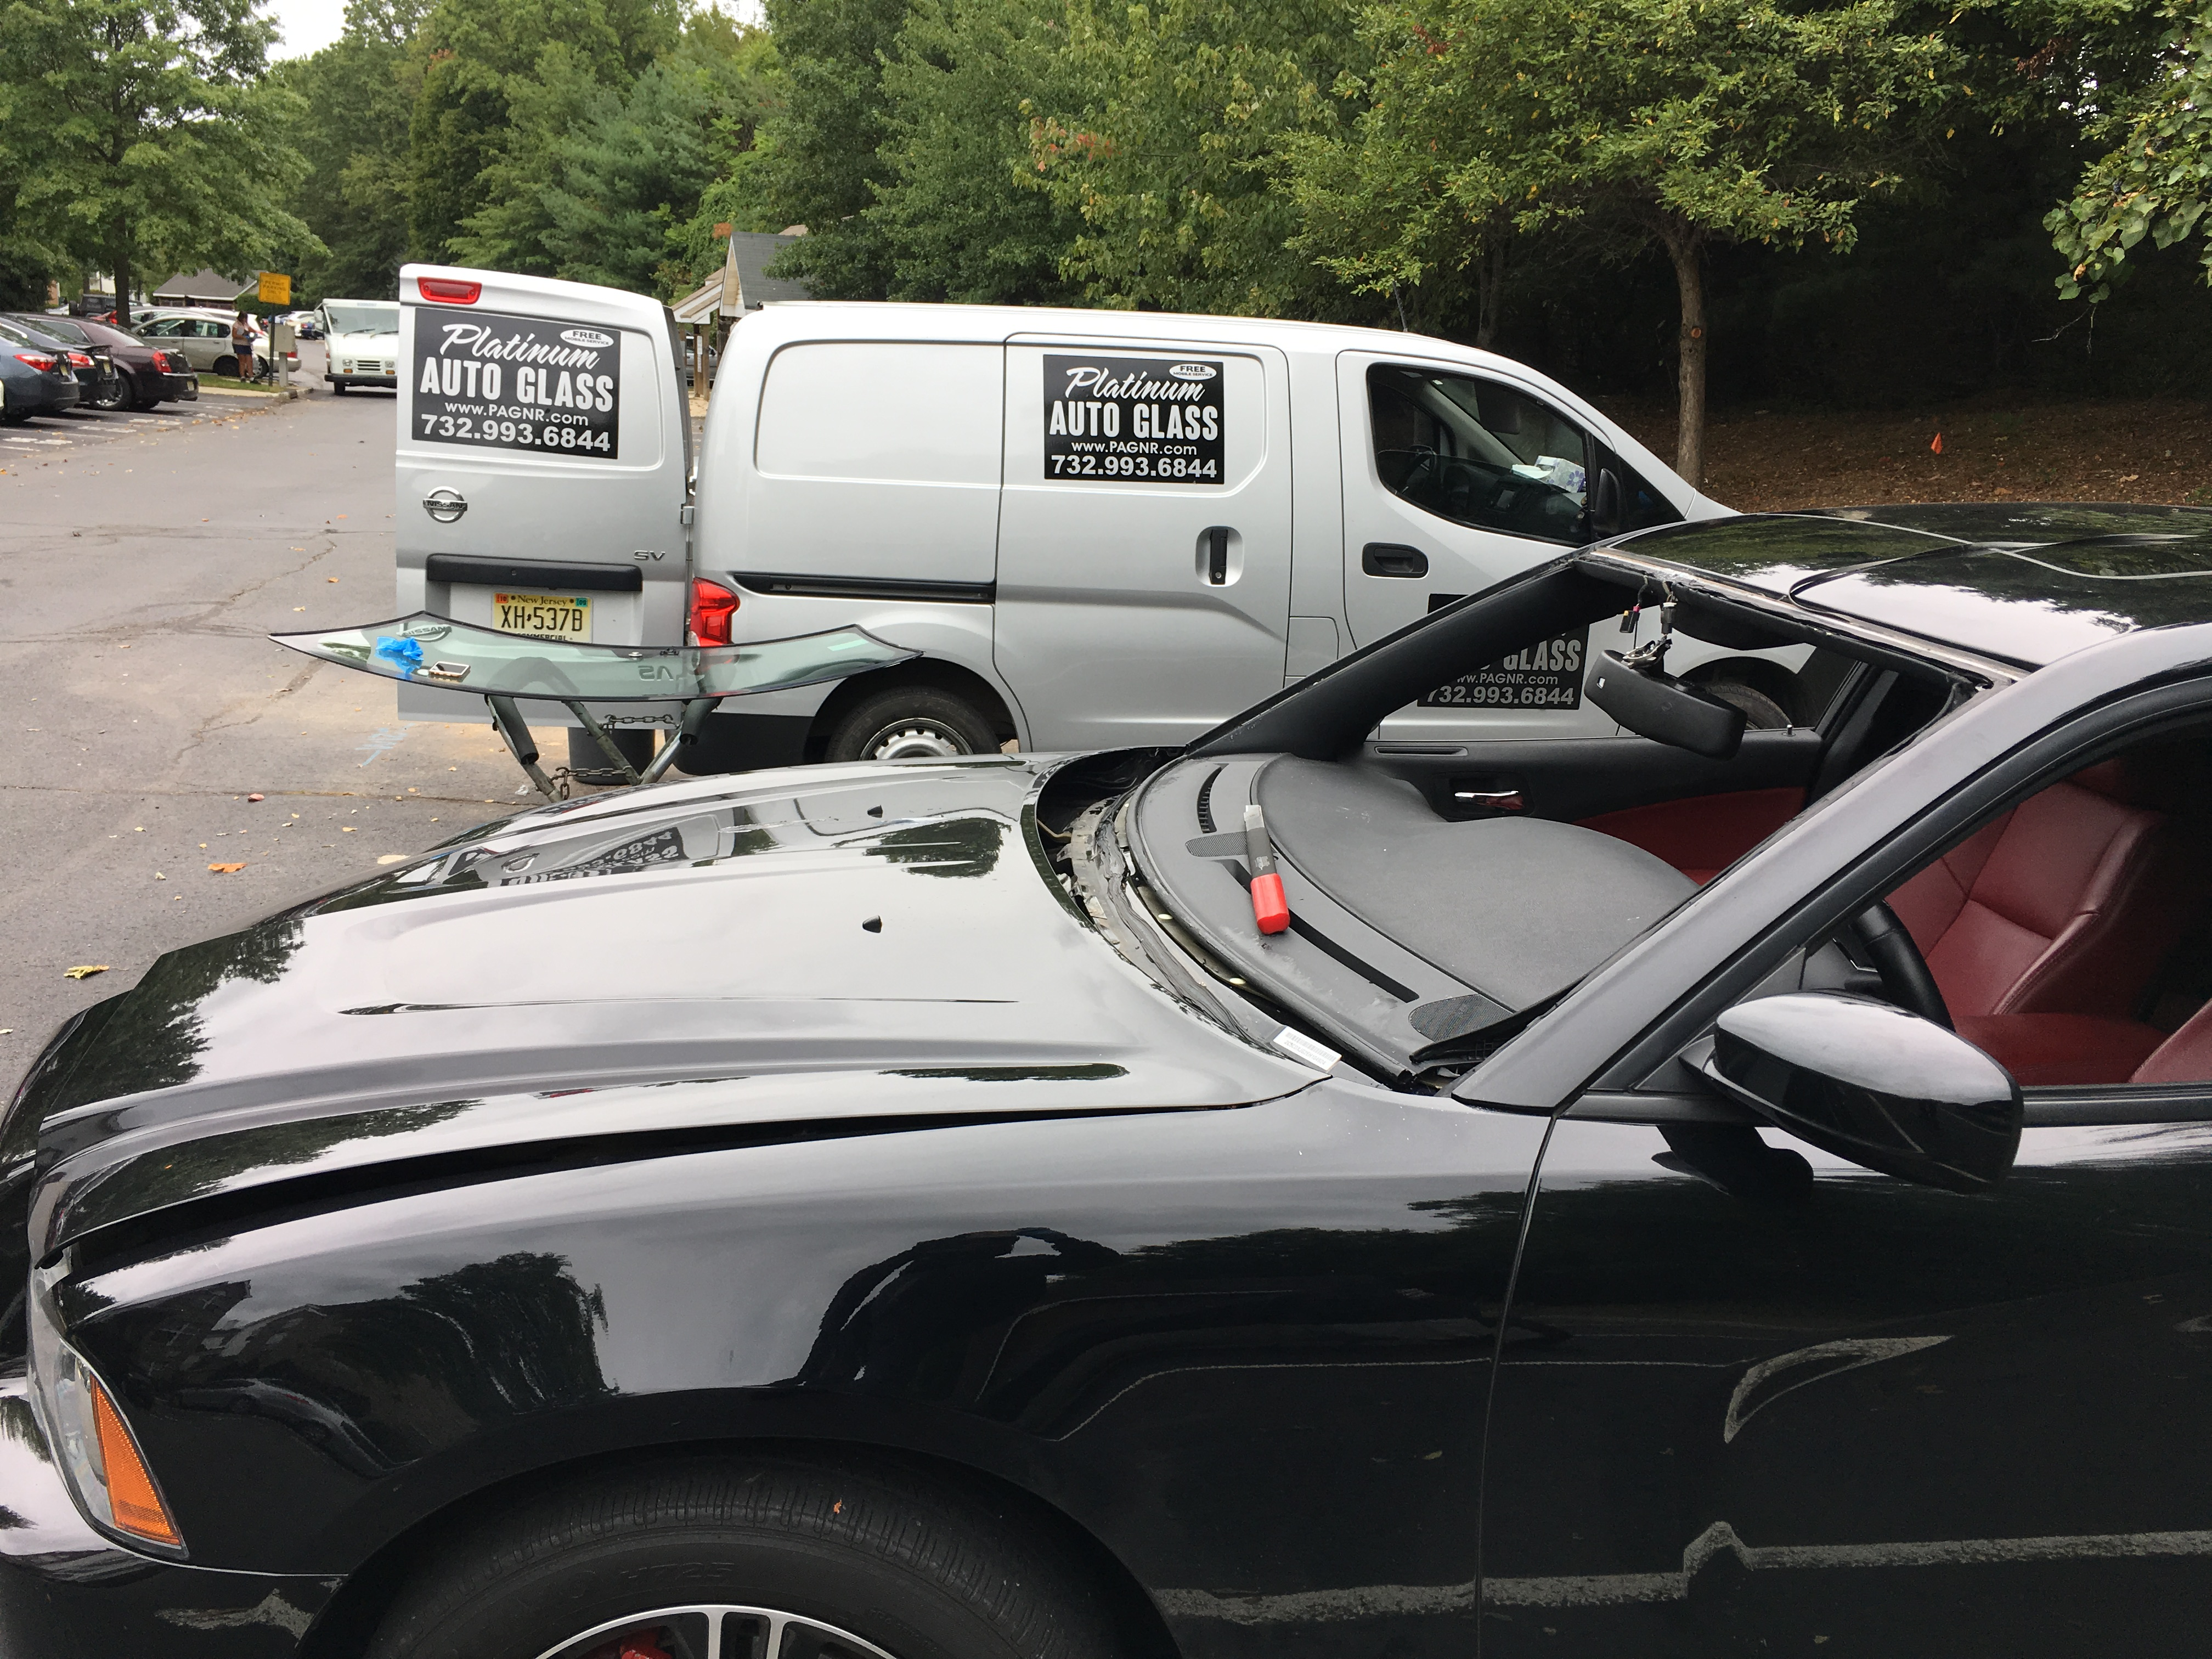 2015 Dodge Charge  automobile cut out before new window replacement all done in New Jersey    by Platinum Auto Glass Repair  New Jersey @platinumautoglassnj.com